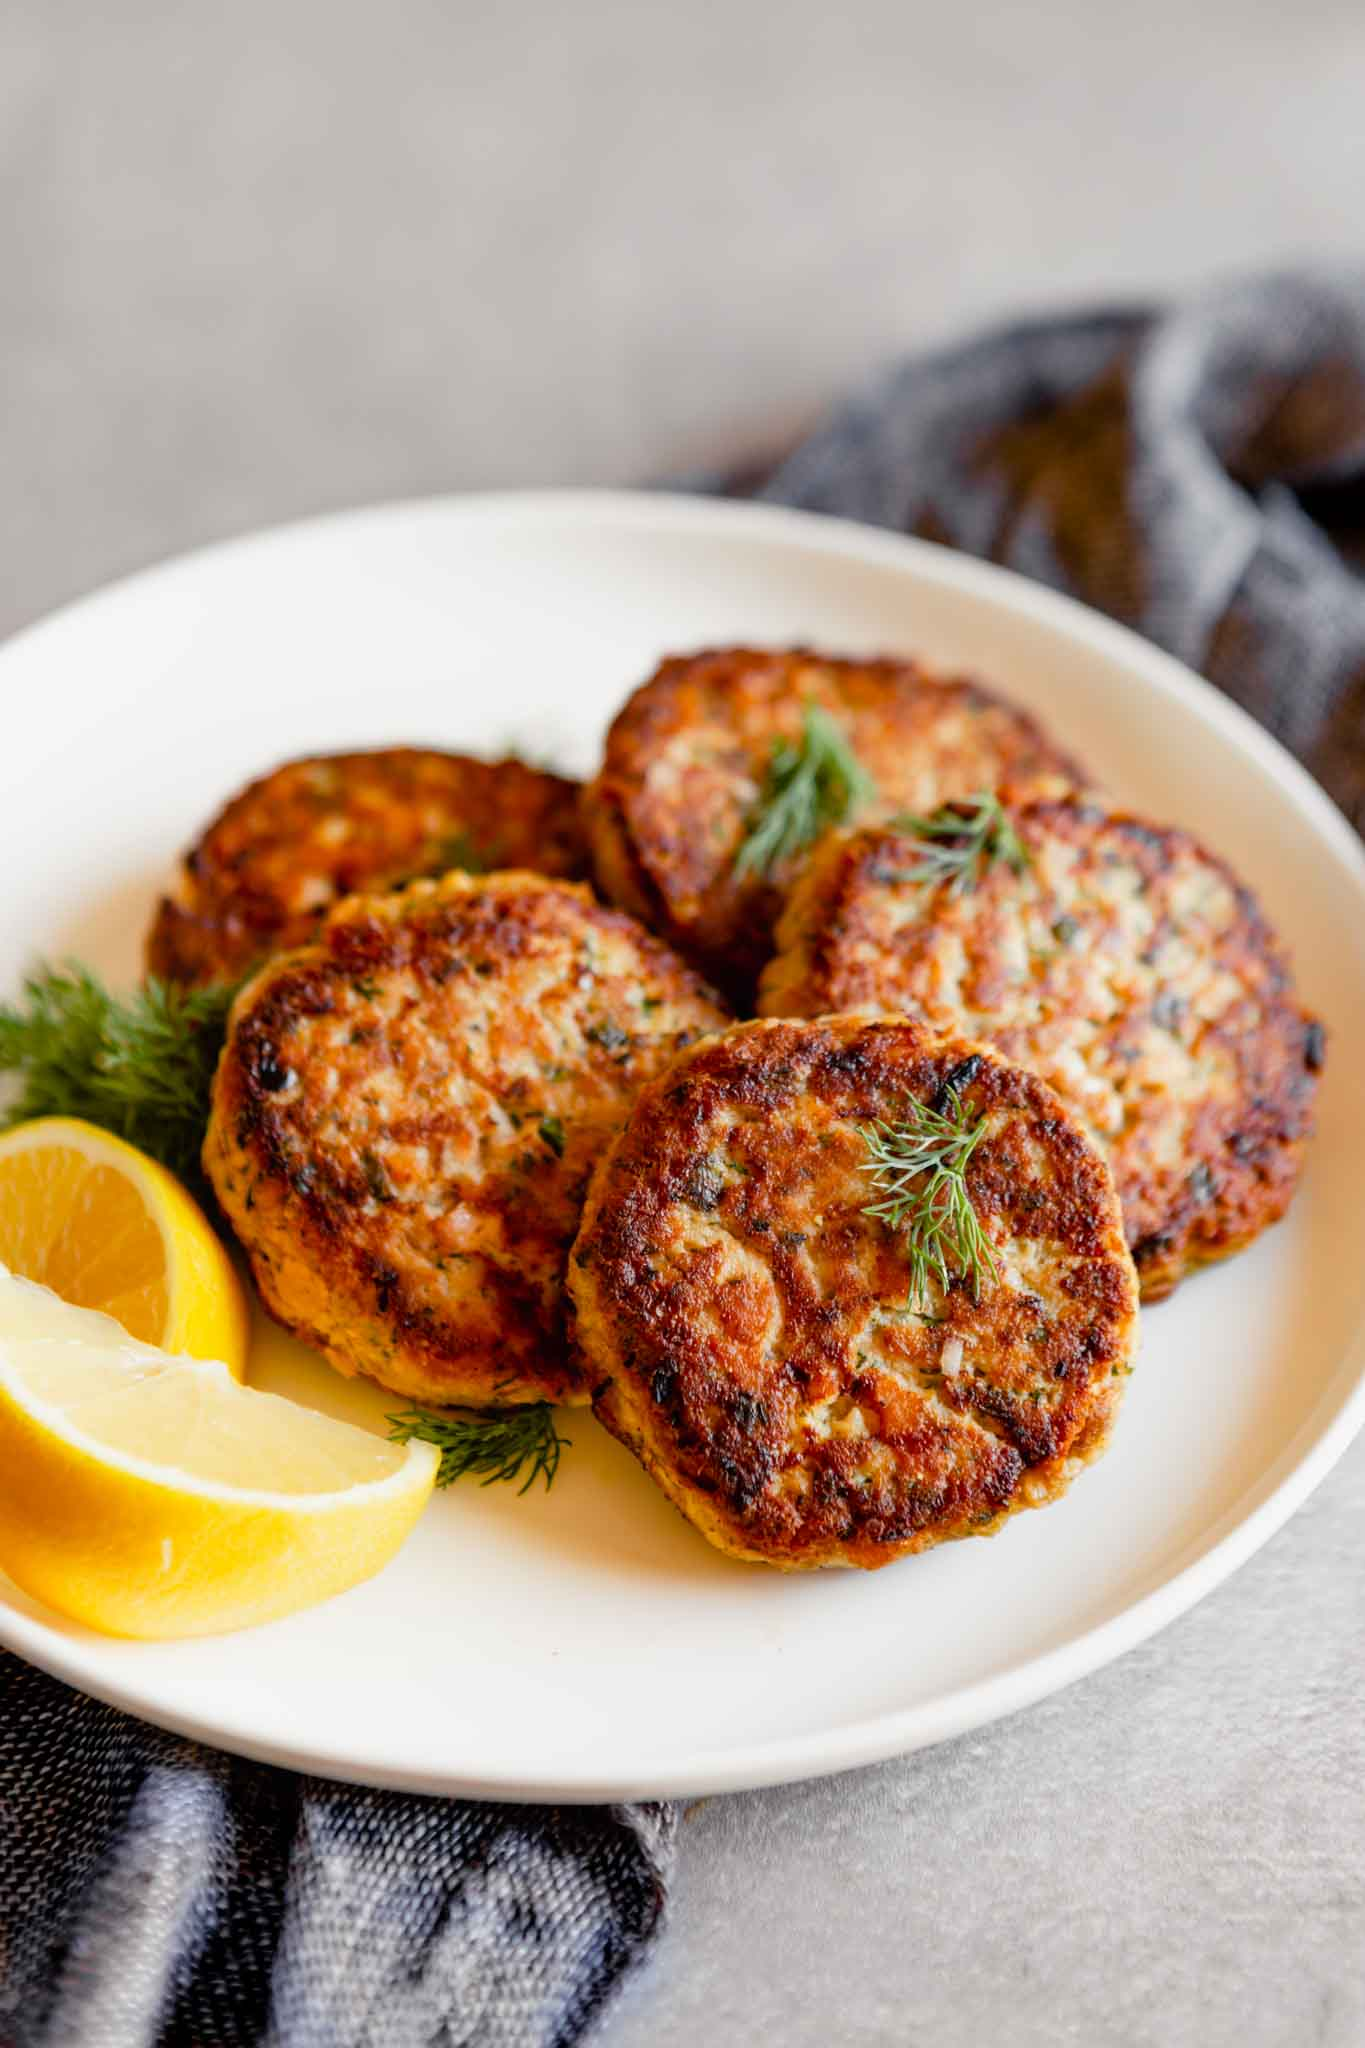 Photo of salmon cakes stacked on a white plate with lemon slices on a gray table.